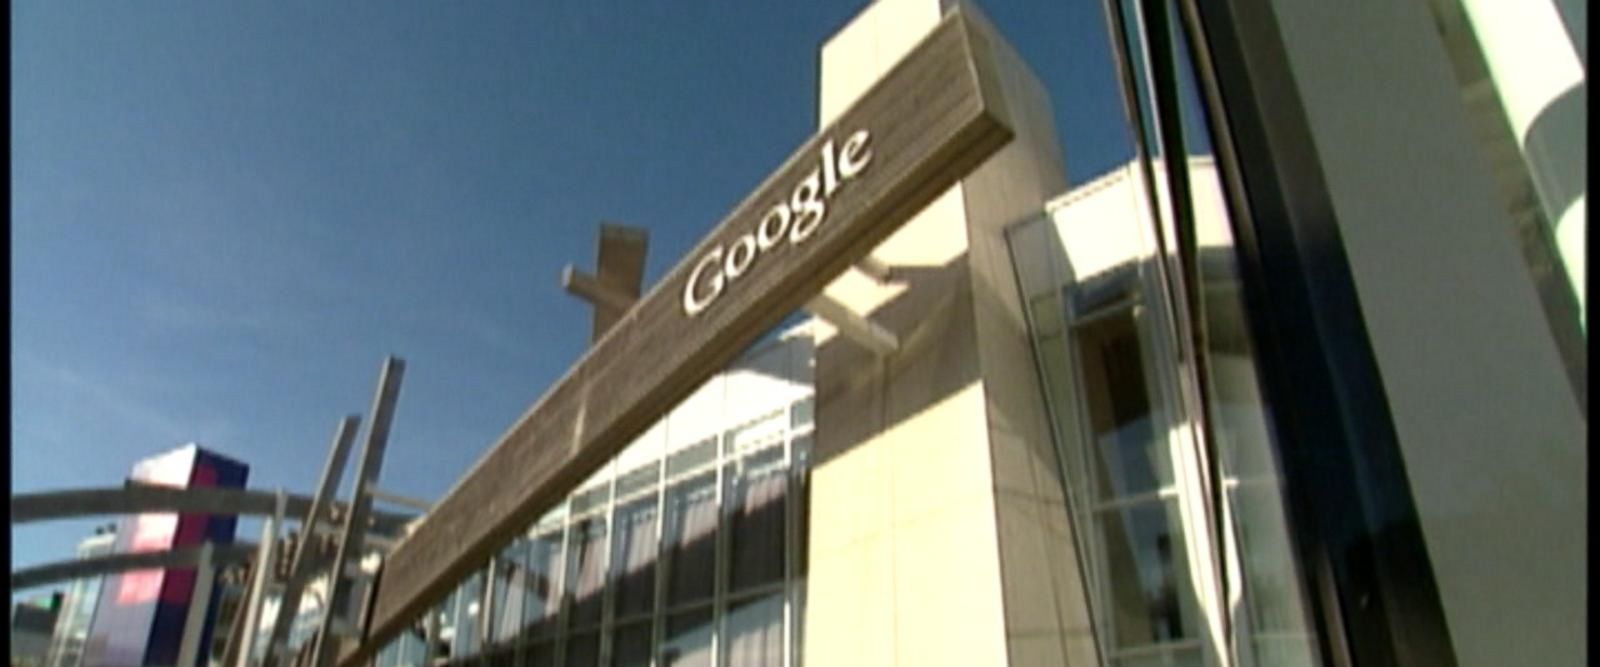 VIDEO: Women accuse Google of discrimination against female employees